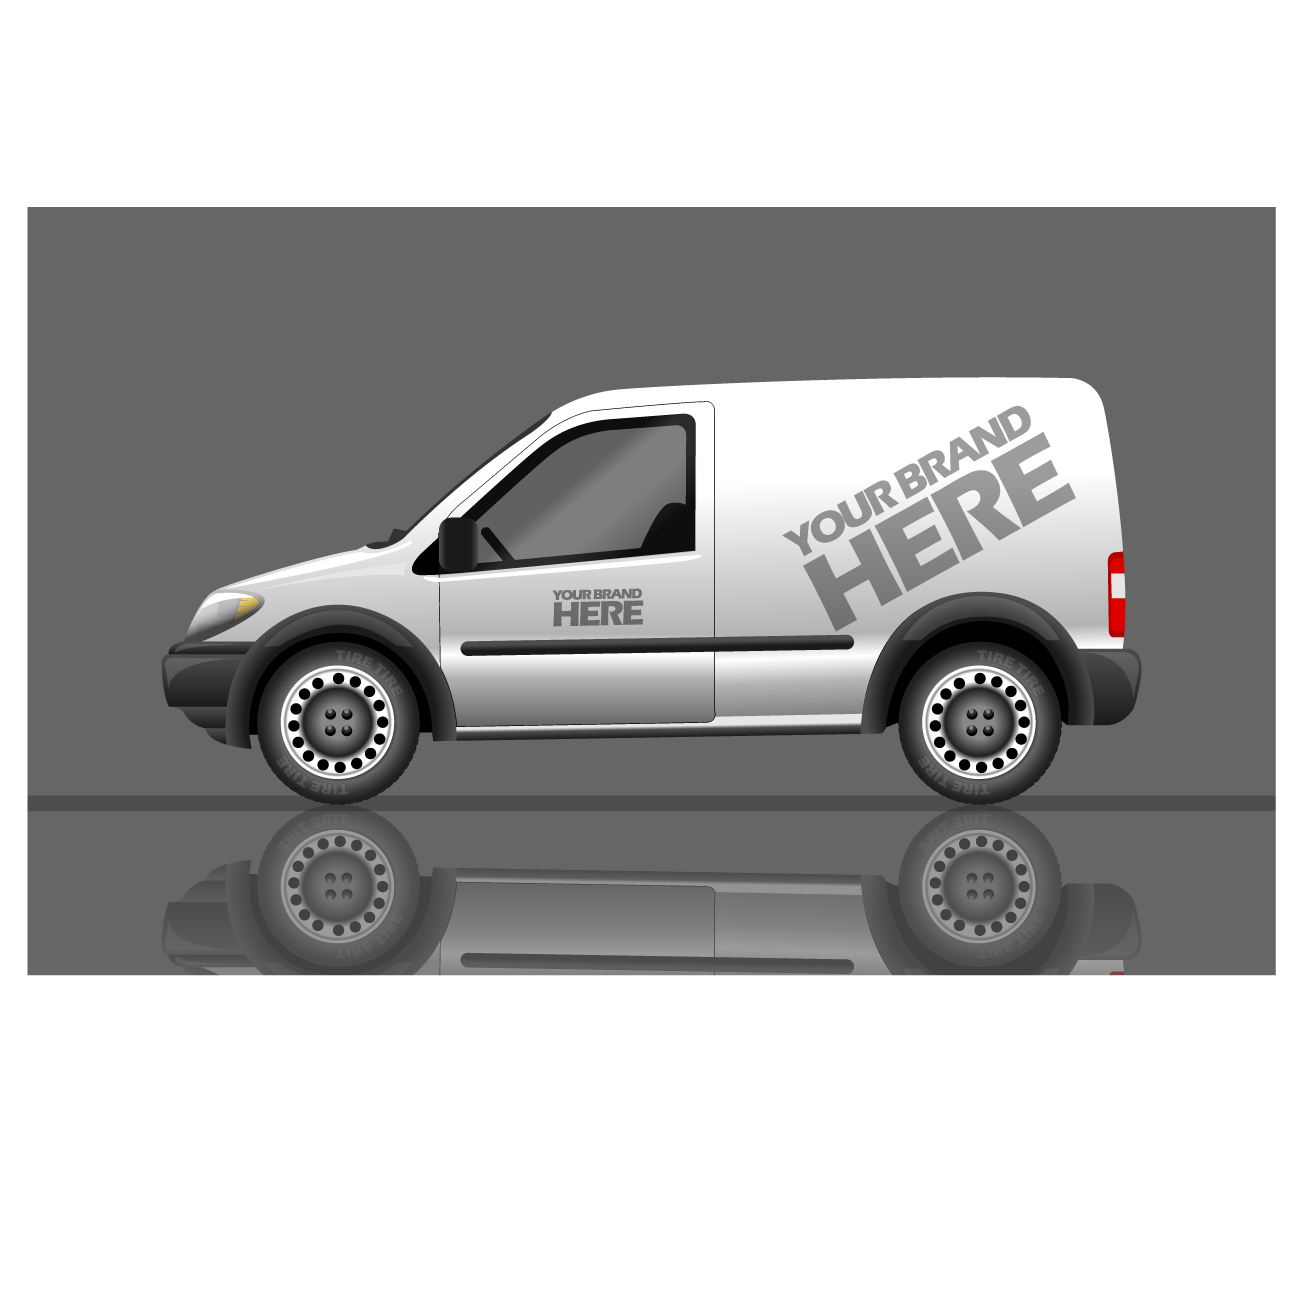 Corporate vehicle branding in Durban